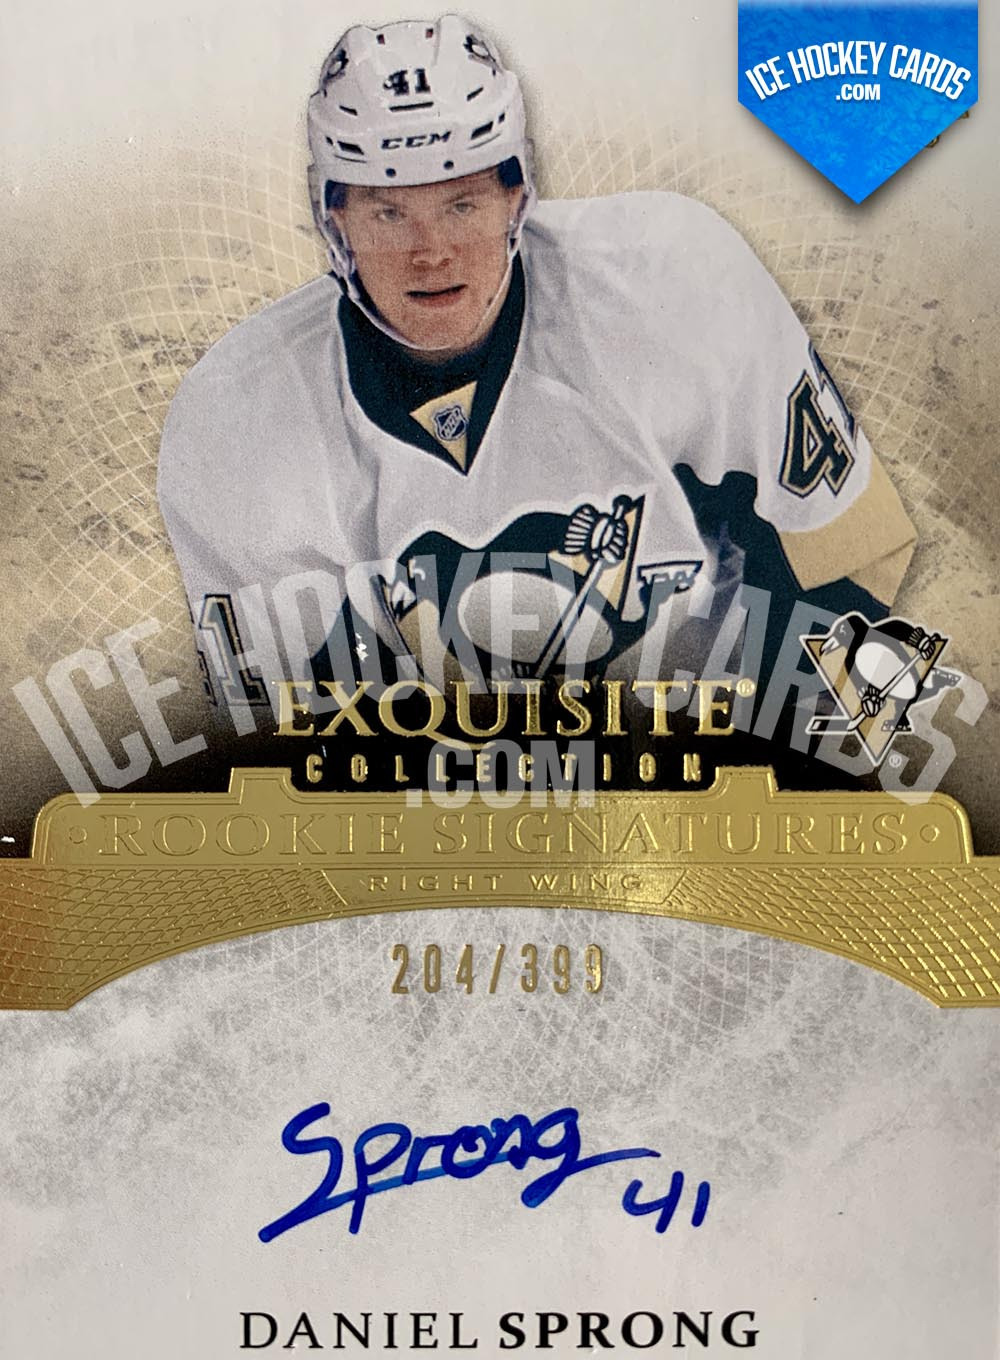 Upper Deck - Exquisite Collection 2015-16 - Daniel Sprong Rookie Signatures Auto Card